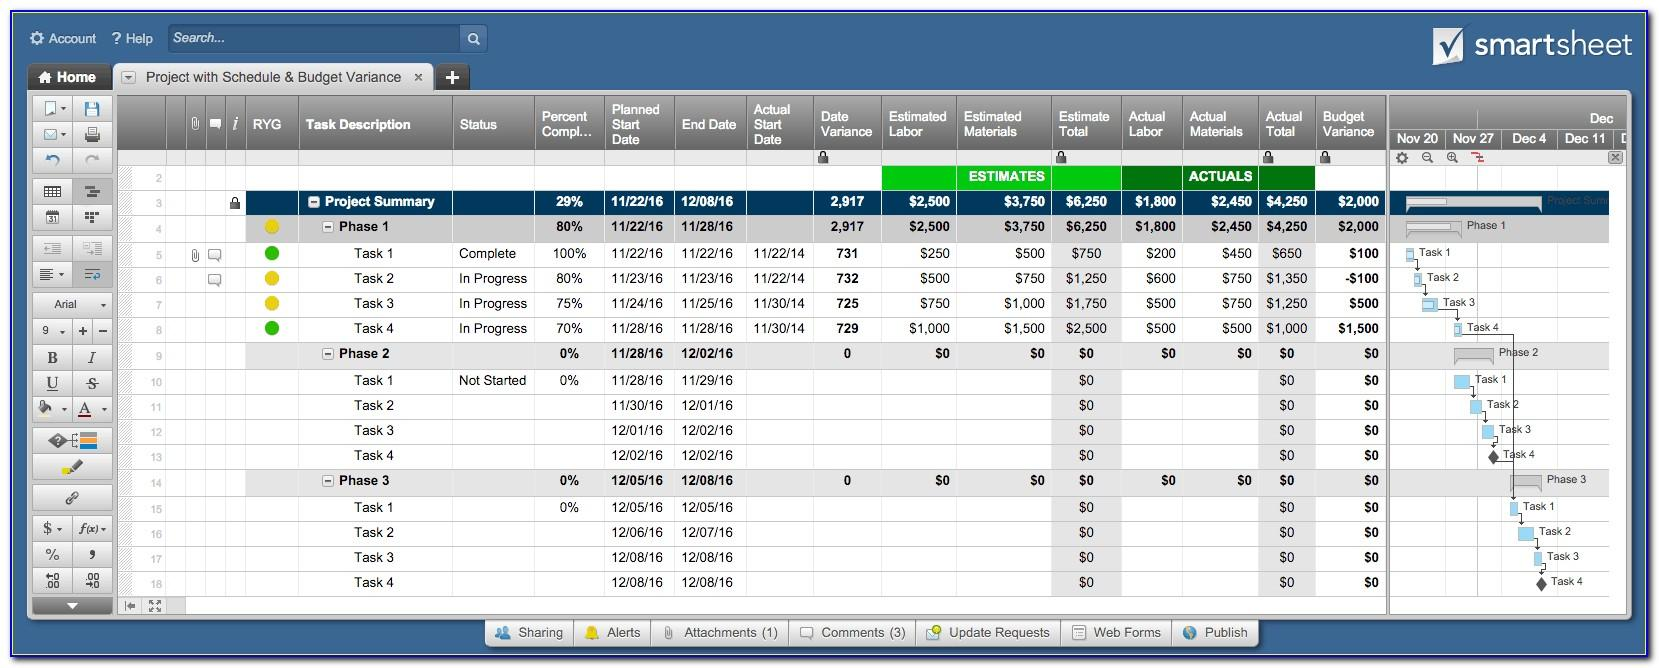 Ms Excel Project Tracking Template